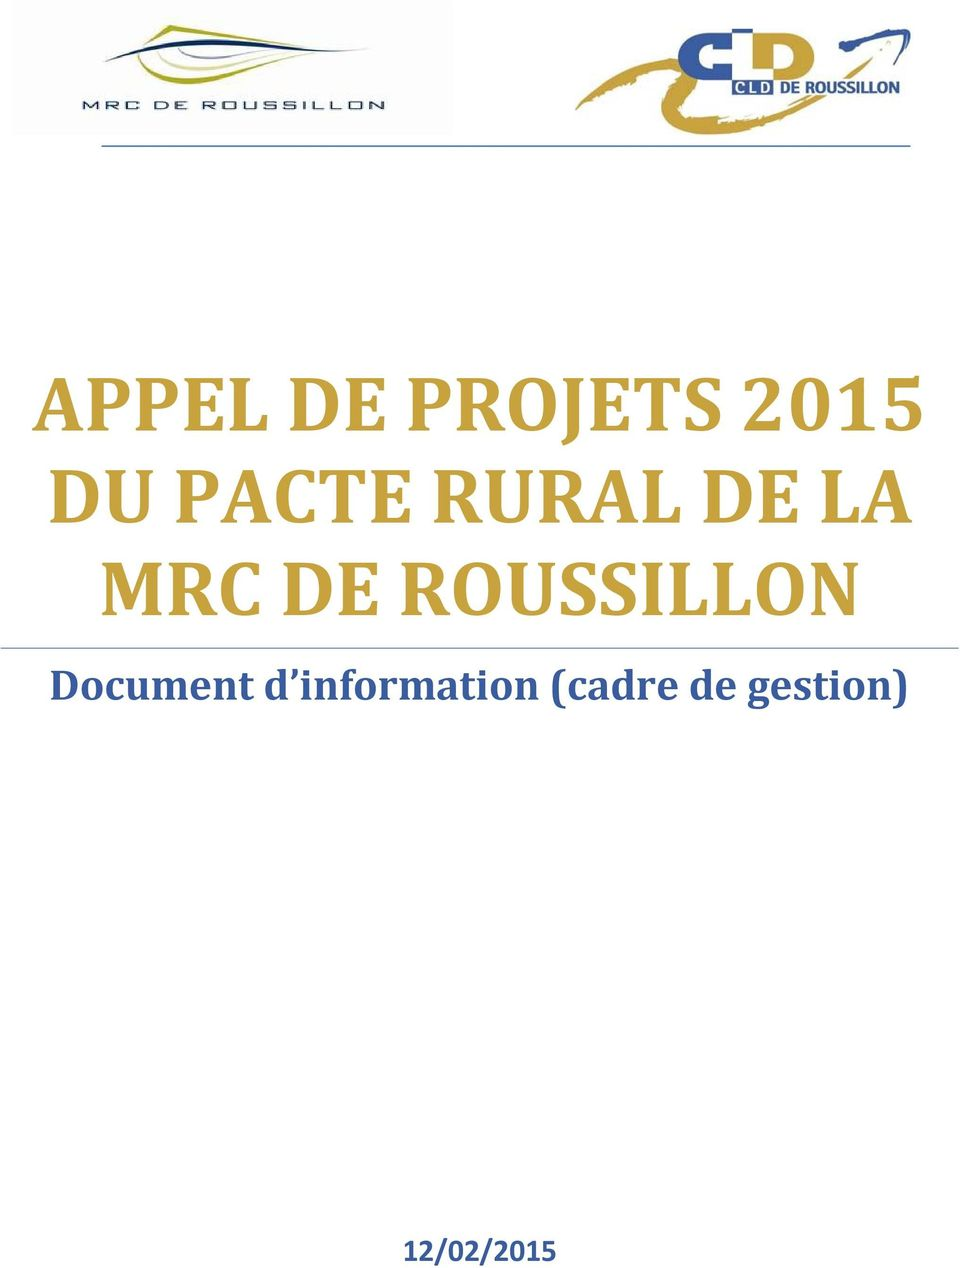 ROUSSILLON Document d